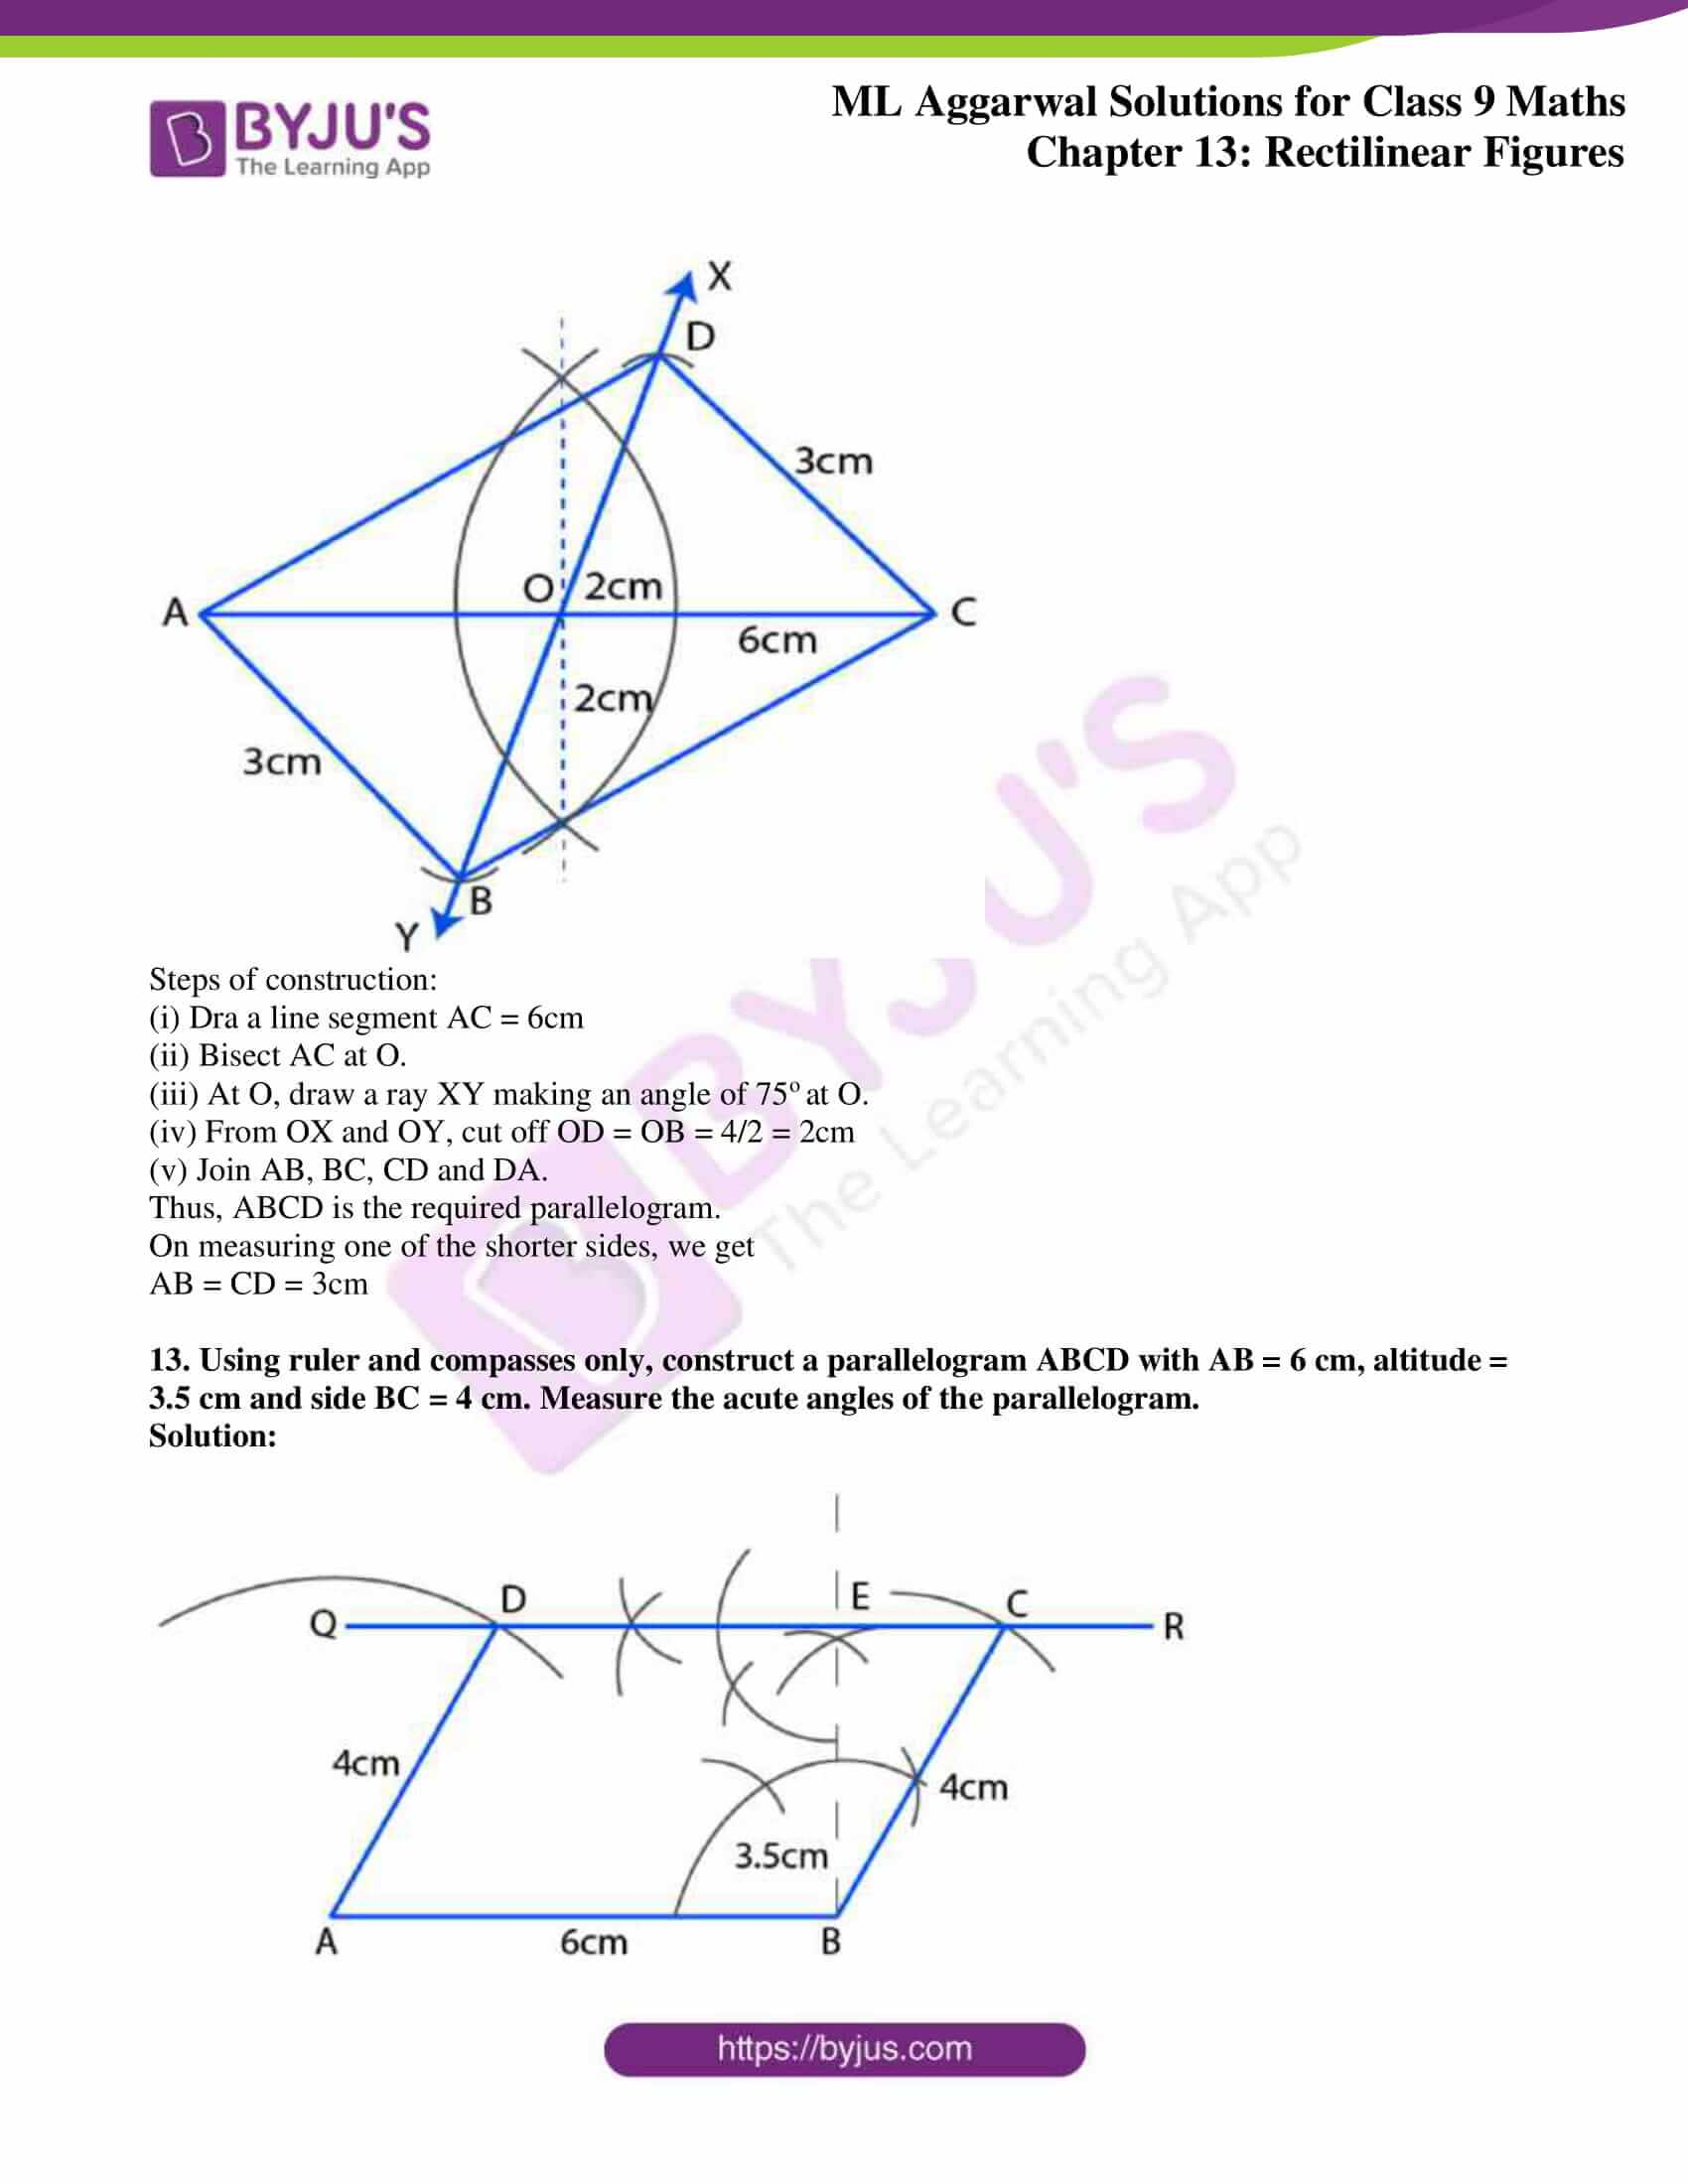 ml aggarwal solutions for class 9 maths chapter 13 31